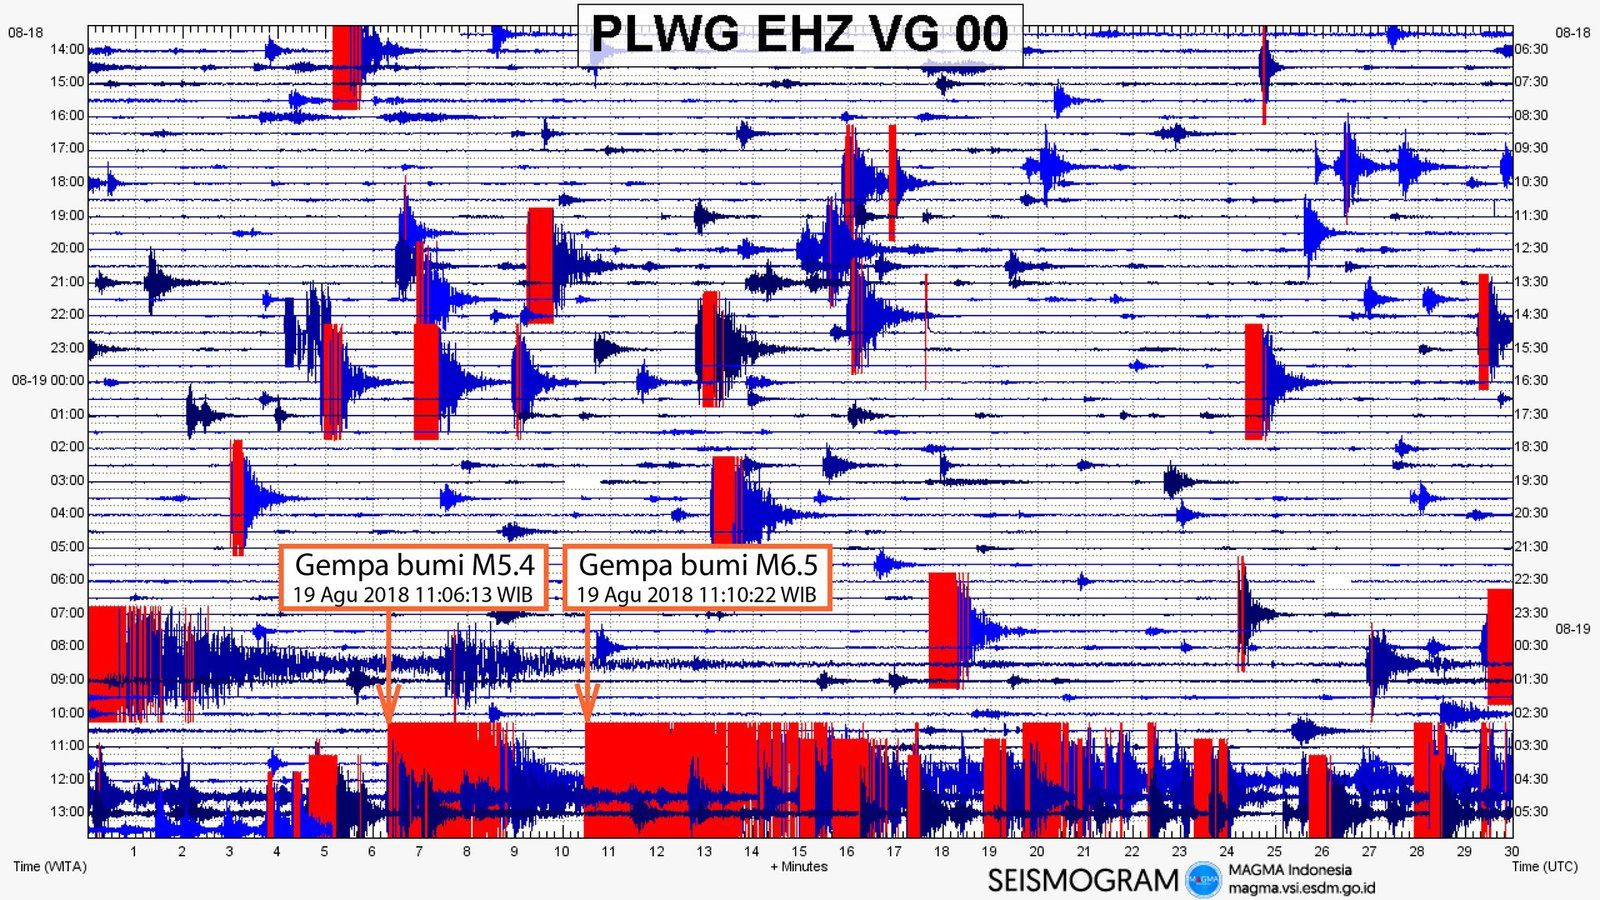 Lombok - earthquakes of 19.08.2018 / EMSC, and Rinjani seismogram of the earthquake with the most important earthquakes / Magma Indonesia